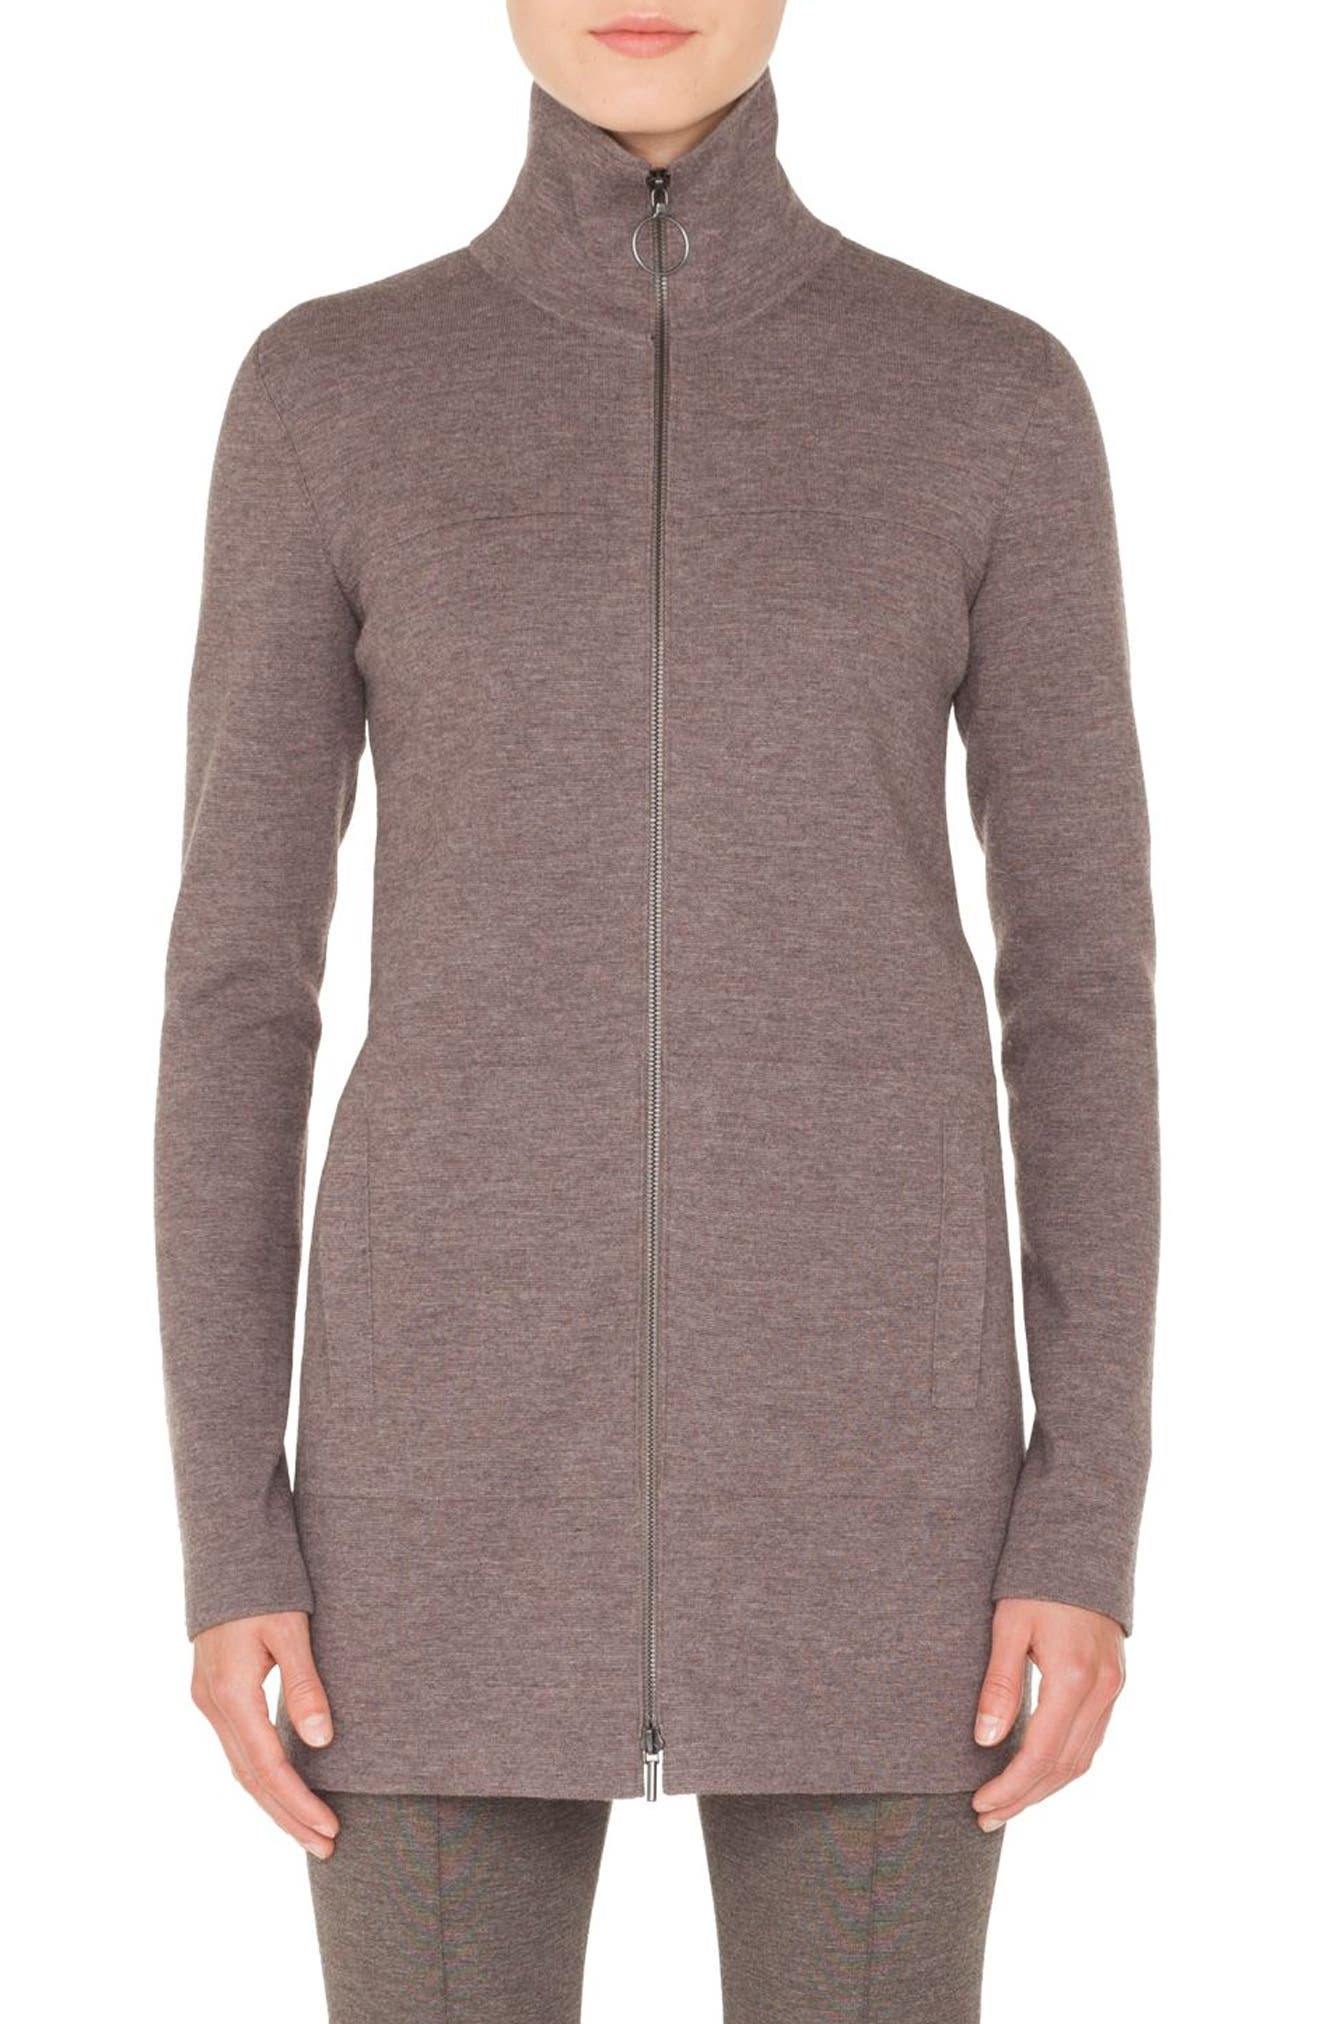 Turtleneck Zip-Front Melange Knit Long Cardigan in Taupe